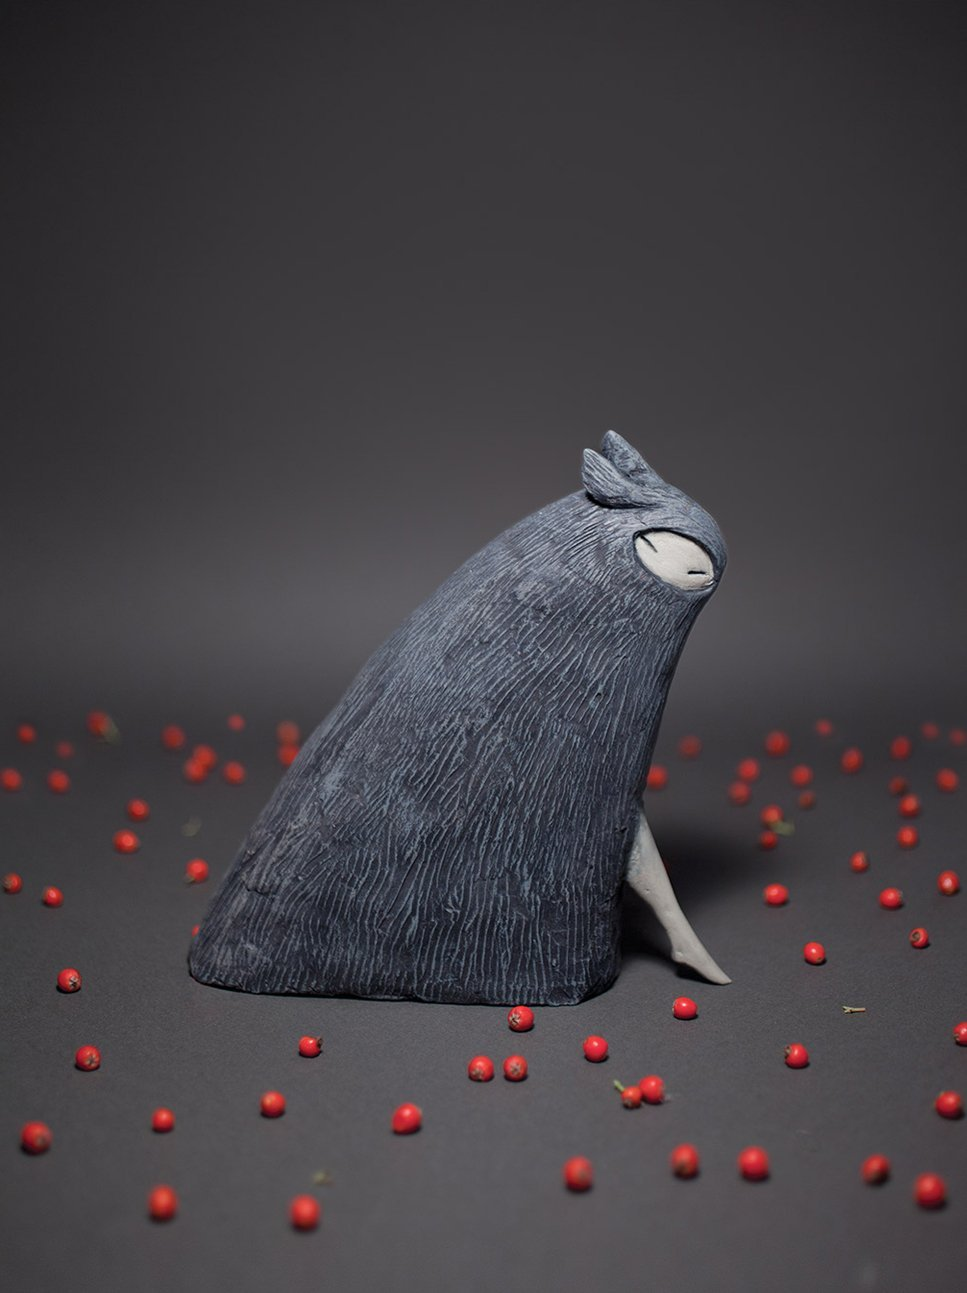 (via The Brothers Grimm in Three Transcendent Dimensions: Shaun Tan's Breathtaking Sculptural Illustrations for the Beloved Tales | Brain Pickings)